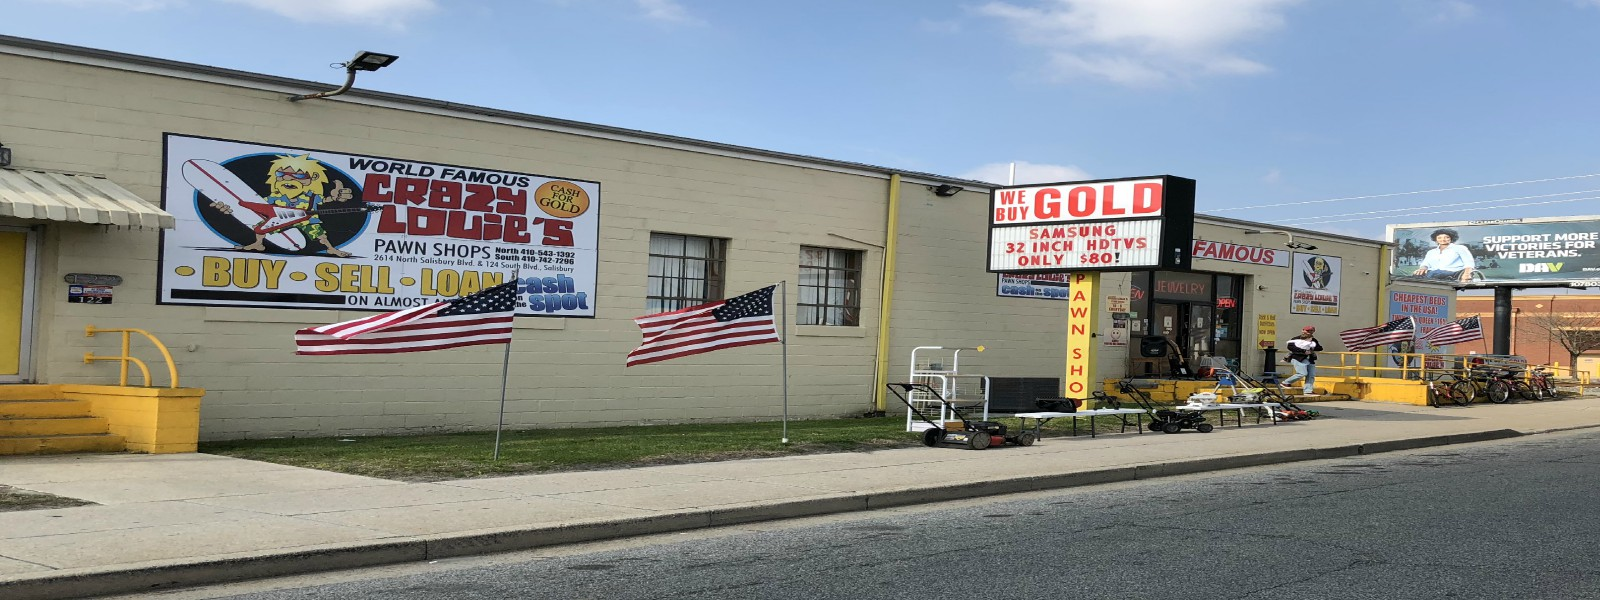 Chain of Pawn Shops Serving Delmarva Over 30 Years - Crazy